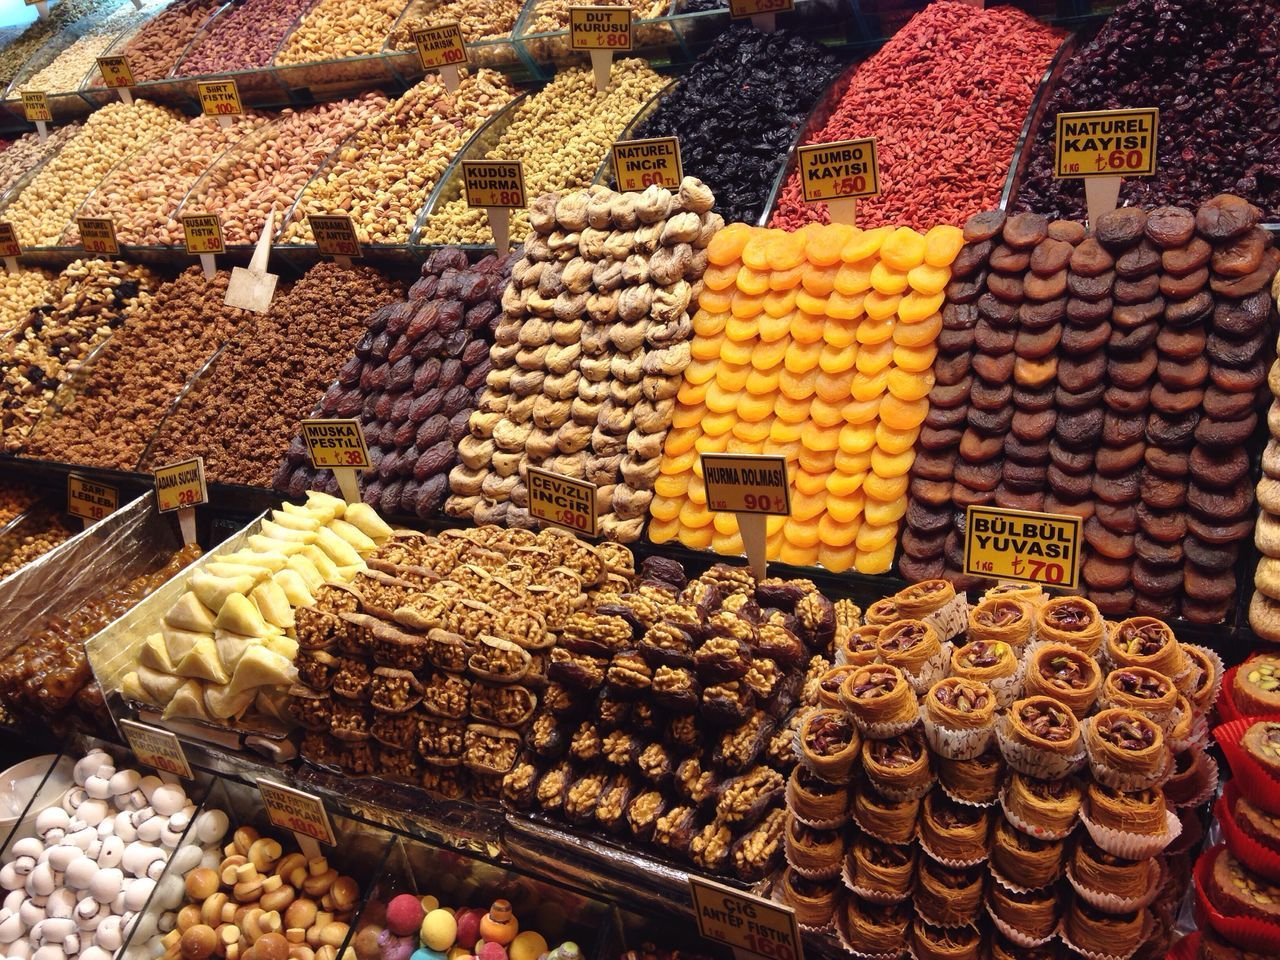 Everything In Its Place Dryfruits Dryfruit Market Sweet Sweets Fruit Fruits